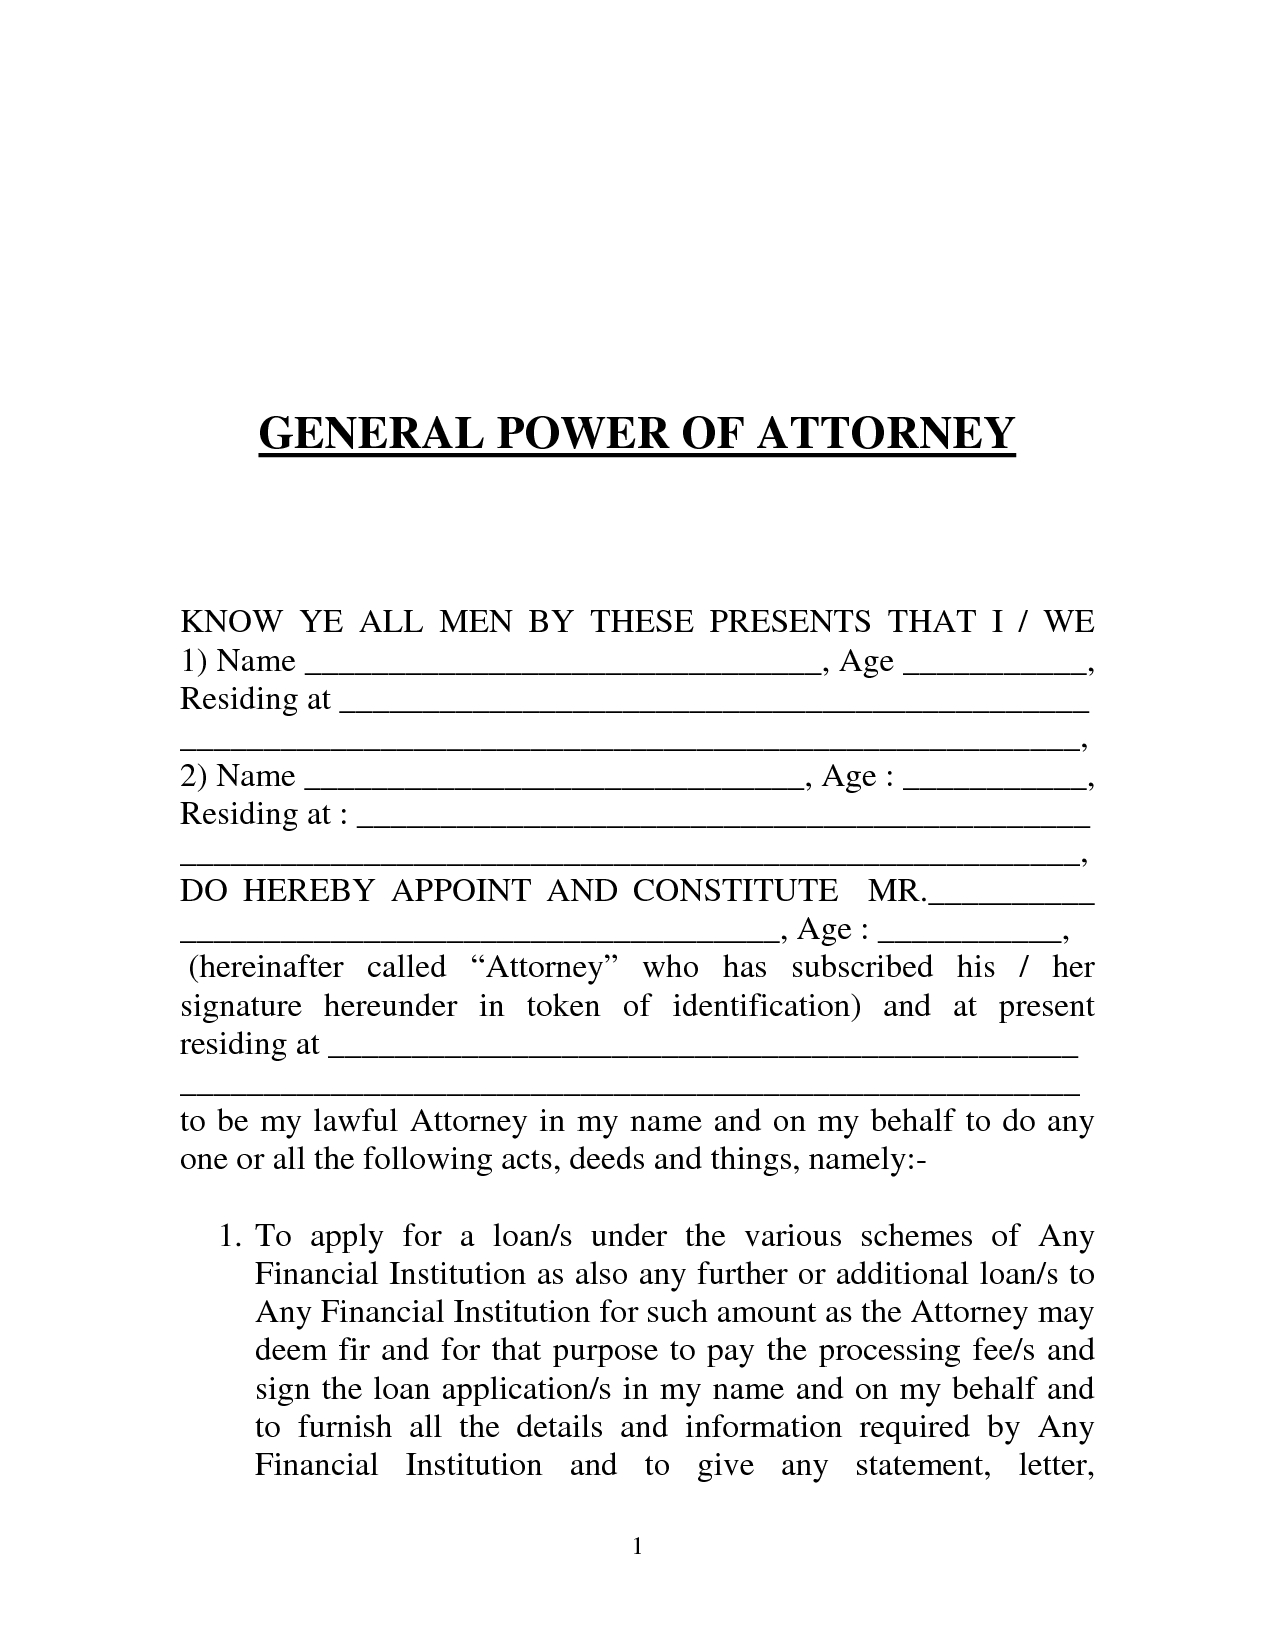 Free Printable Power Of Attorney Form (Generic) - Free Printable Power Of Attorney